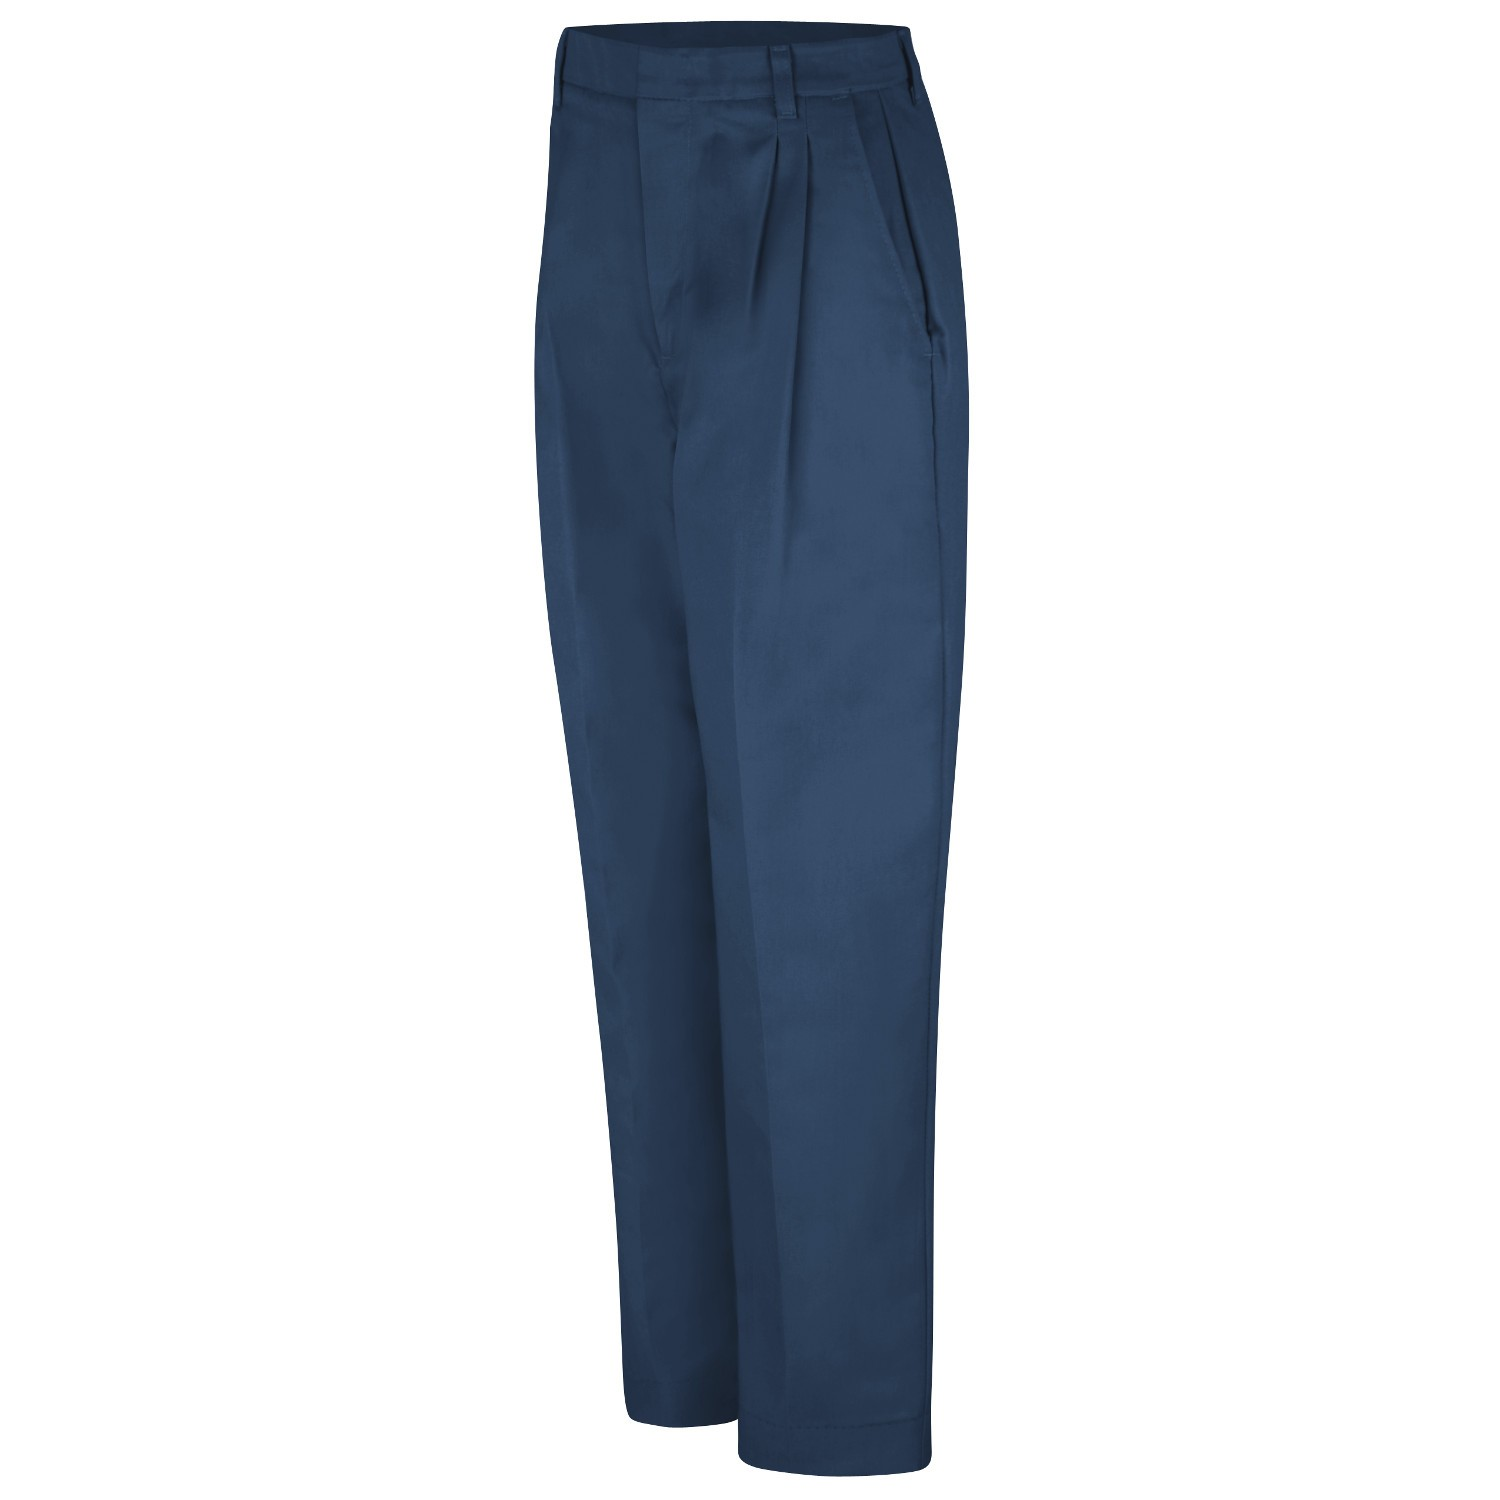 Find great deals on eBay for Womens Slacks. Shop with confidence. Skip to main content. eBay: Bootcut Dress Pants for Women -Stretch Comfy Work Office Pull on Womens Pant See more like this. WOMENS PANTS SLACKS New SIZES 18 16 14 10 8 6 2 0 PETITE, TALL or REGULAR, Brand New · Lady Edwards. $